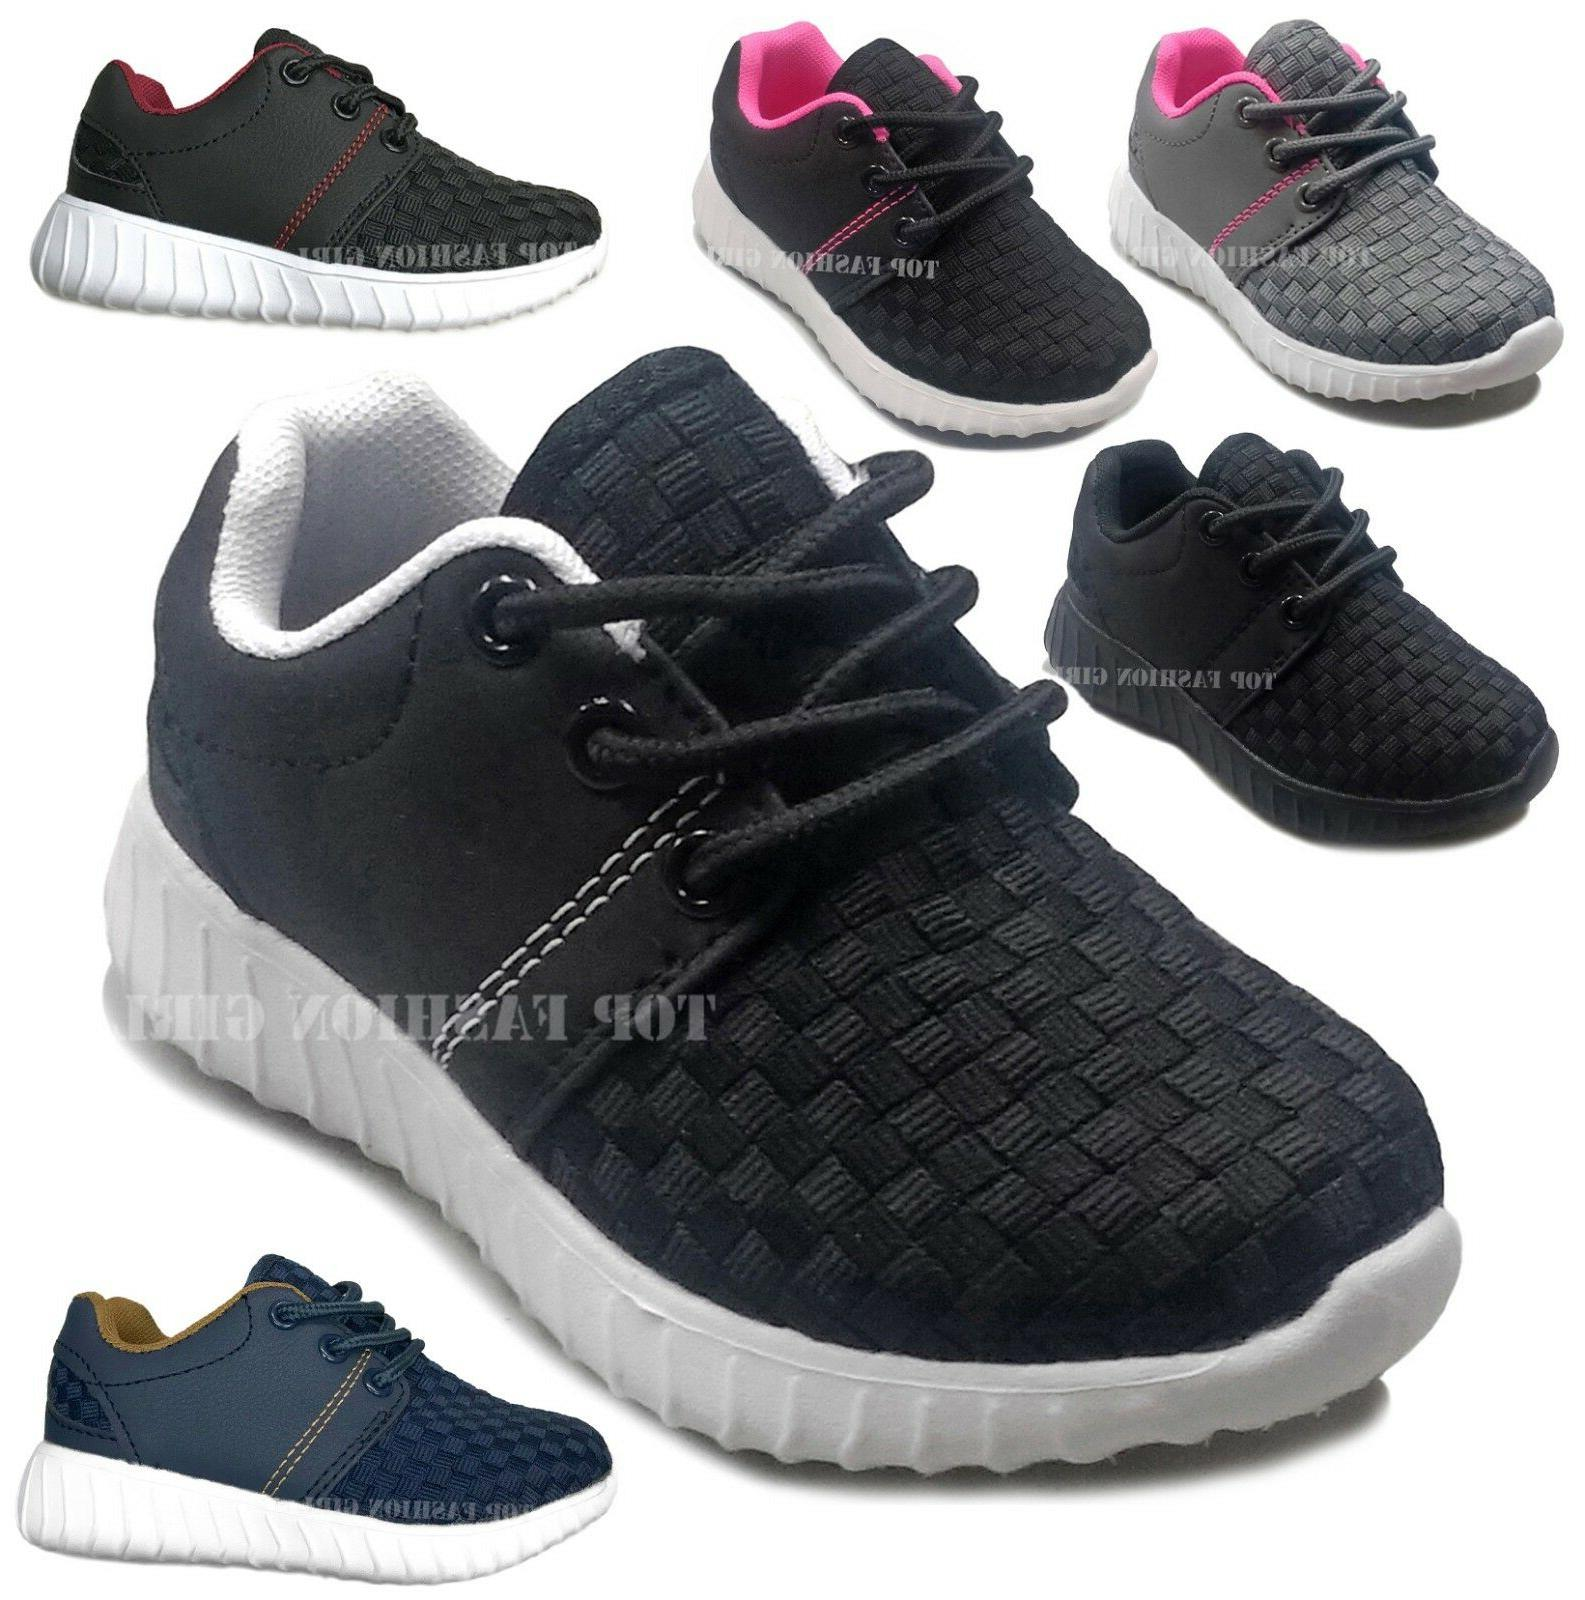 new baby boys girls toddler mesh sneaker